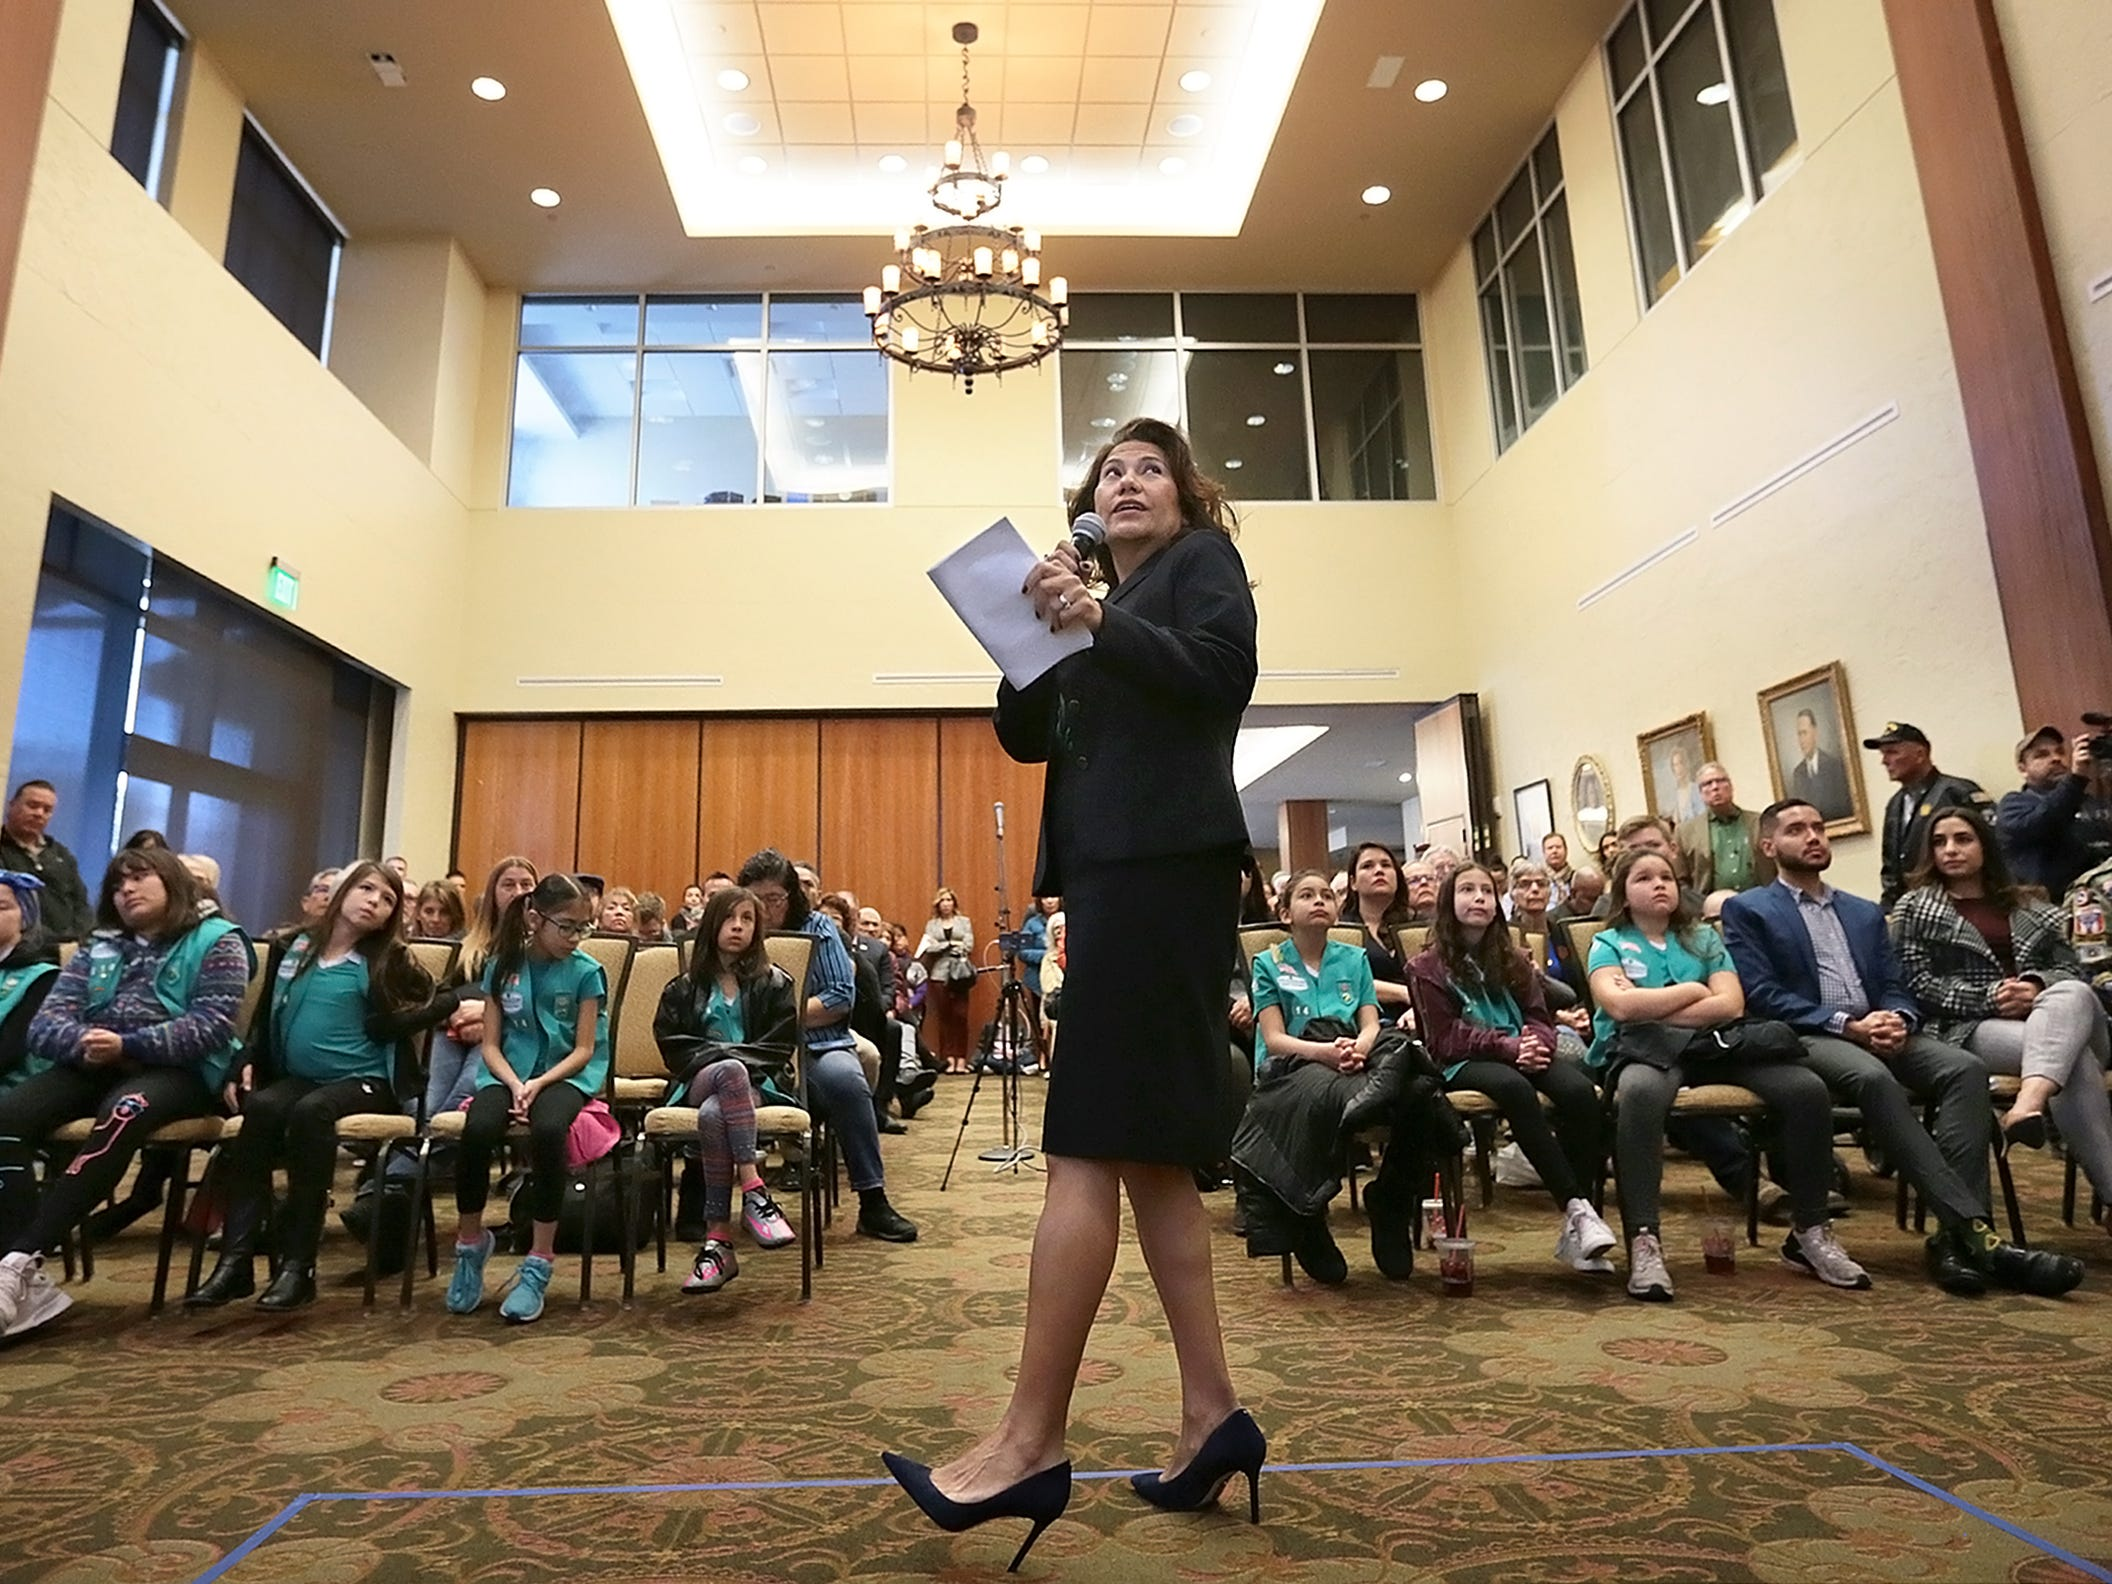 U.S. Rep. Veronica Escobar held her first monthly town hall meeting Saturday at the El Paso Community Foundation. Escobar discussed the government shutdown,  immigration and veteran issues.